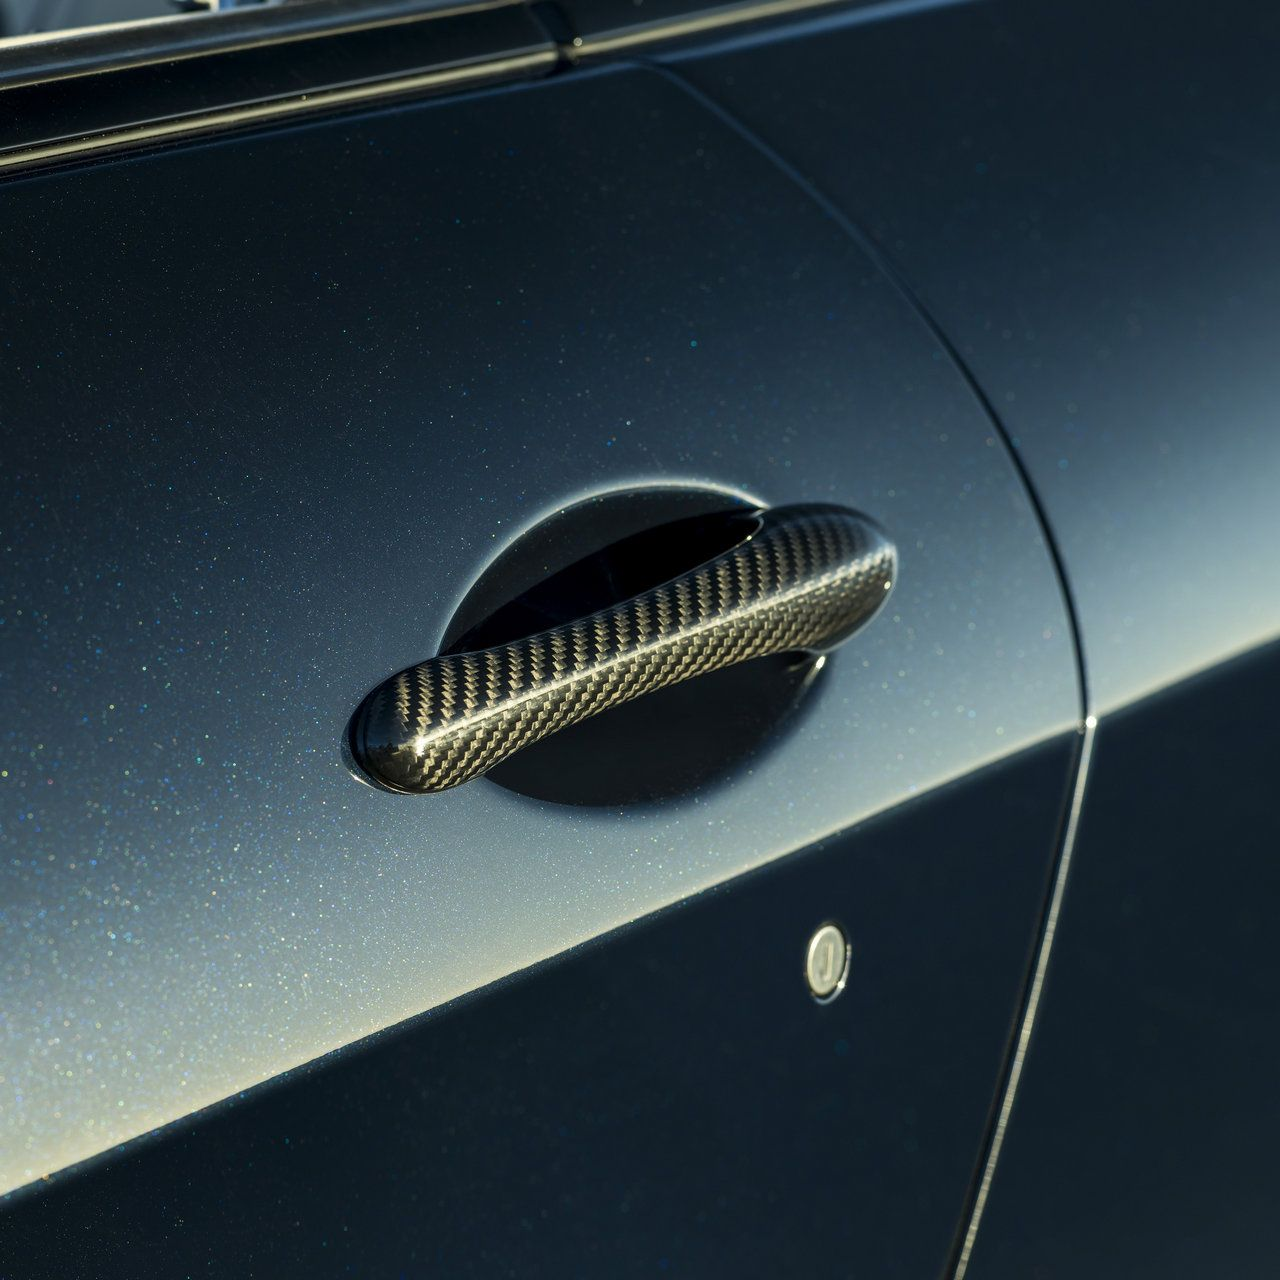 Maserati GranCabrio - car door handle in detail